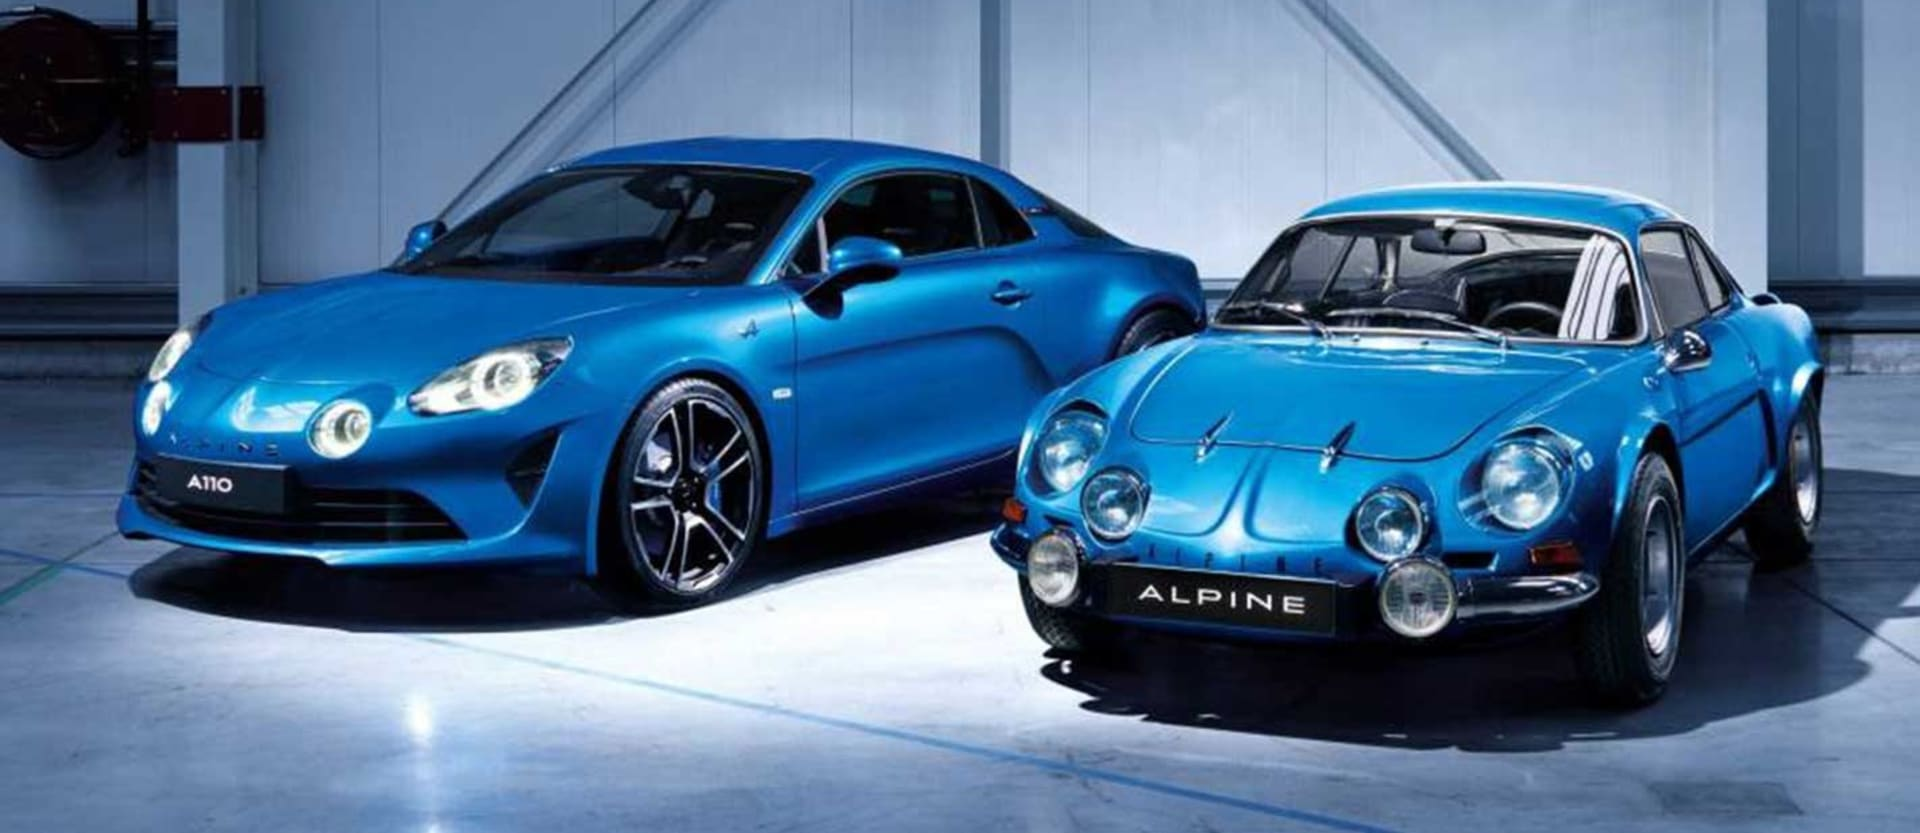 History of the Alpine A110